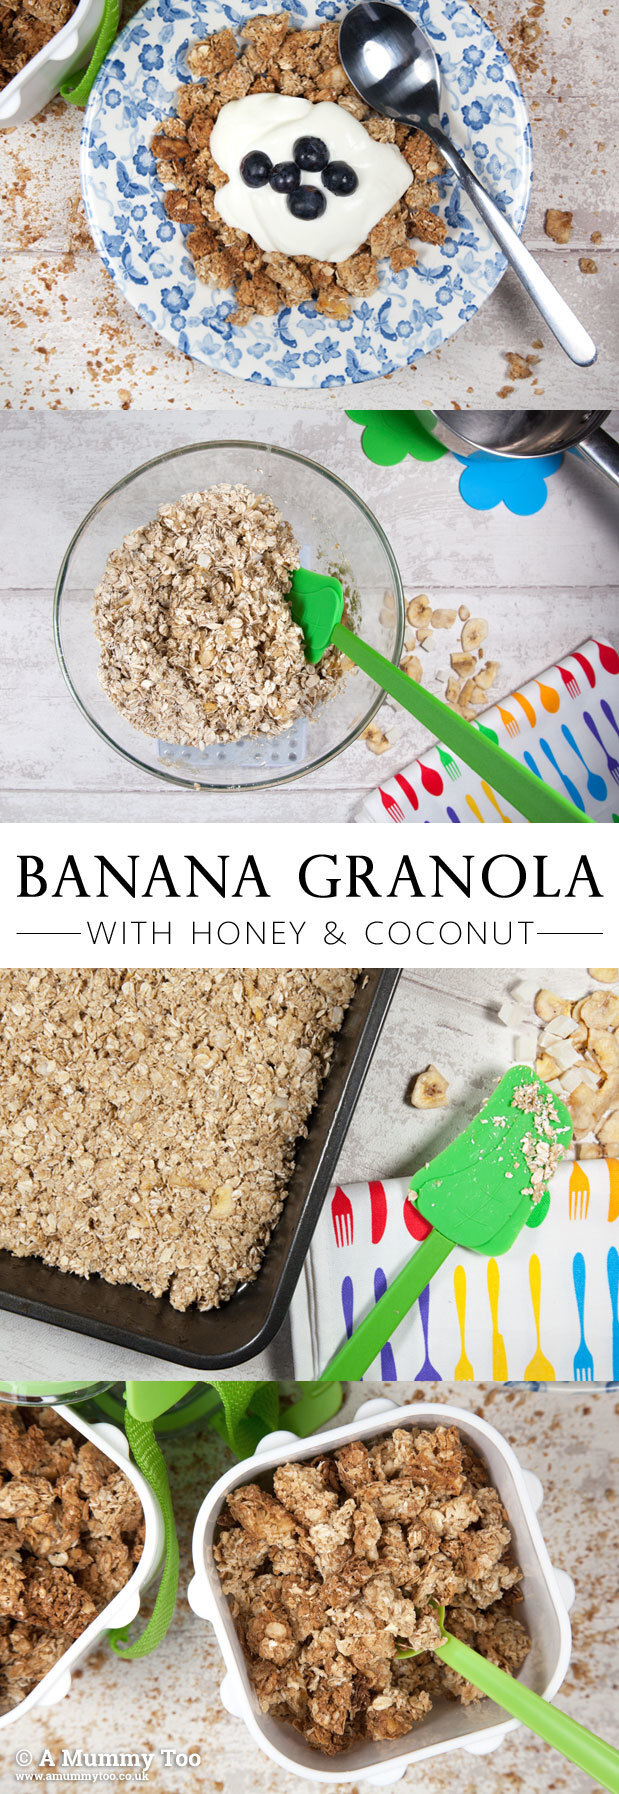 Homemade coconut and banana granola